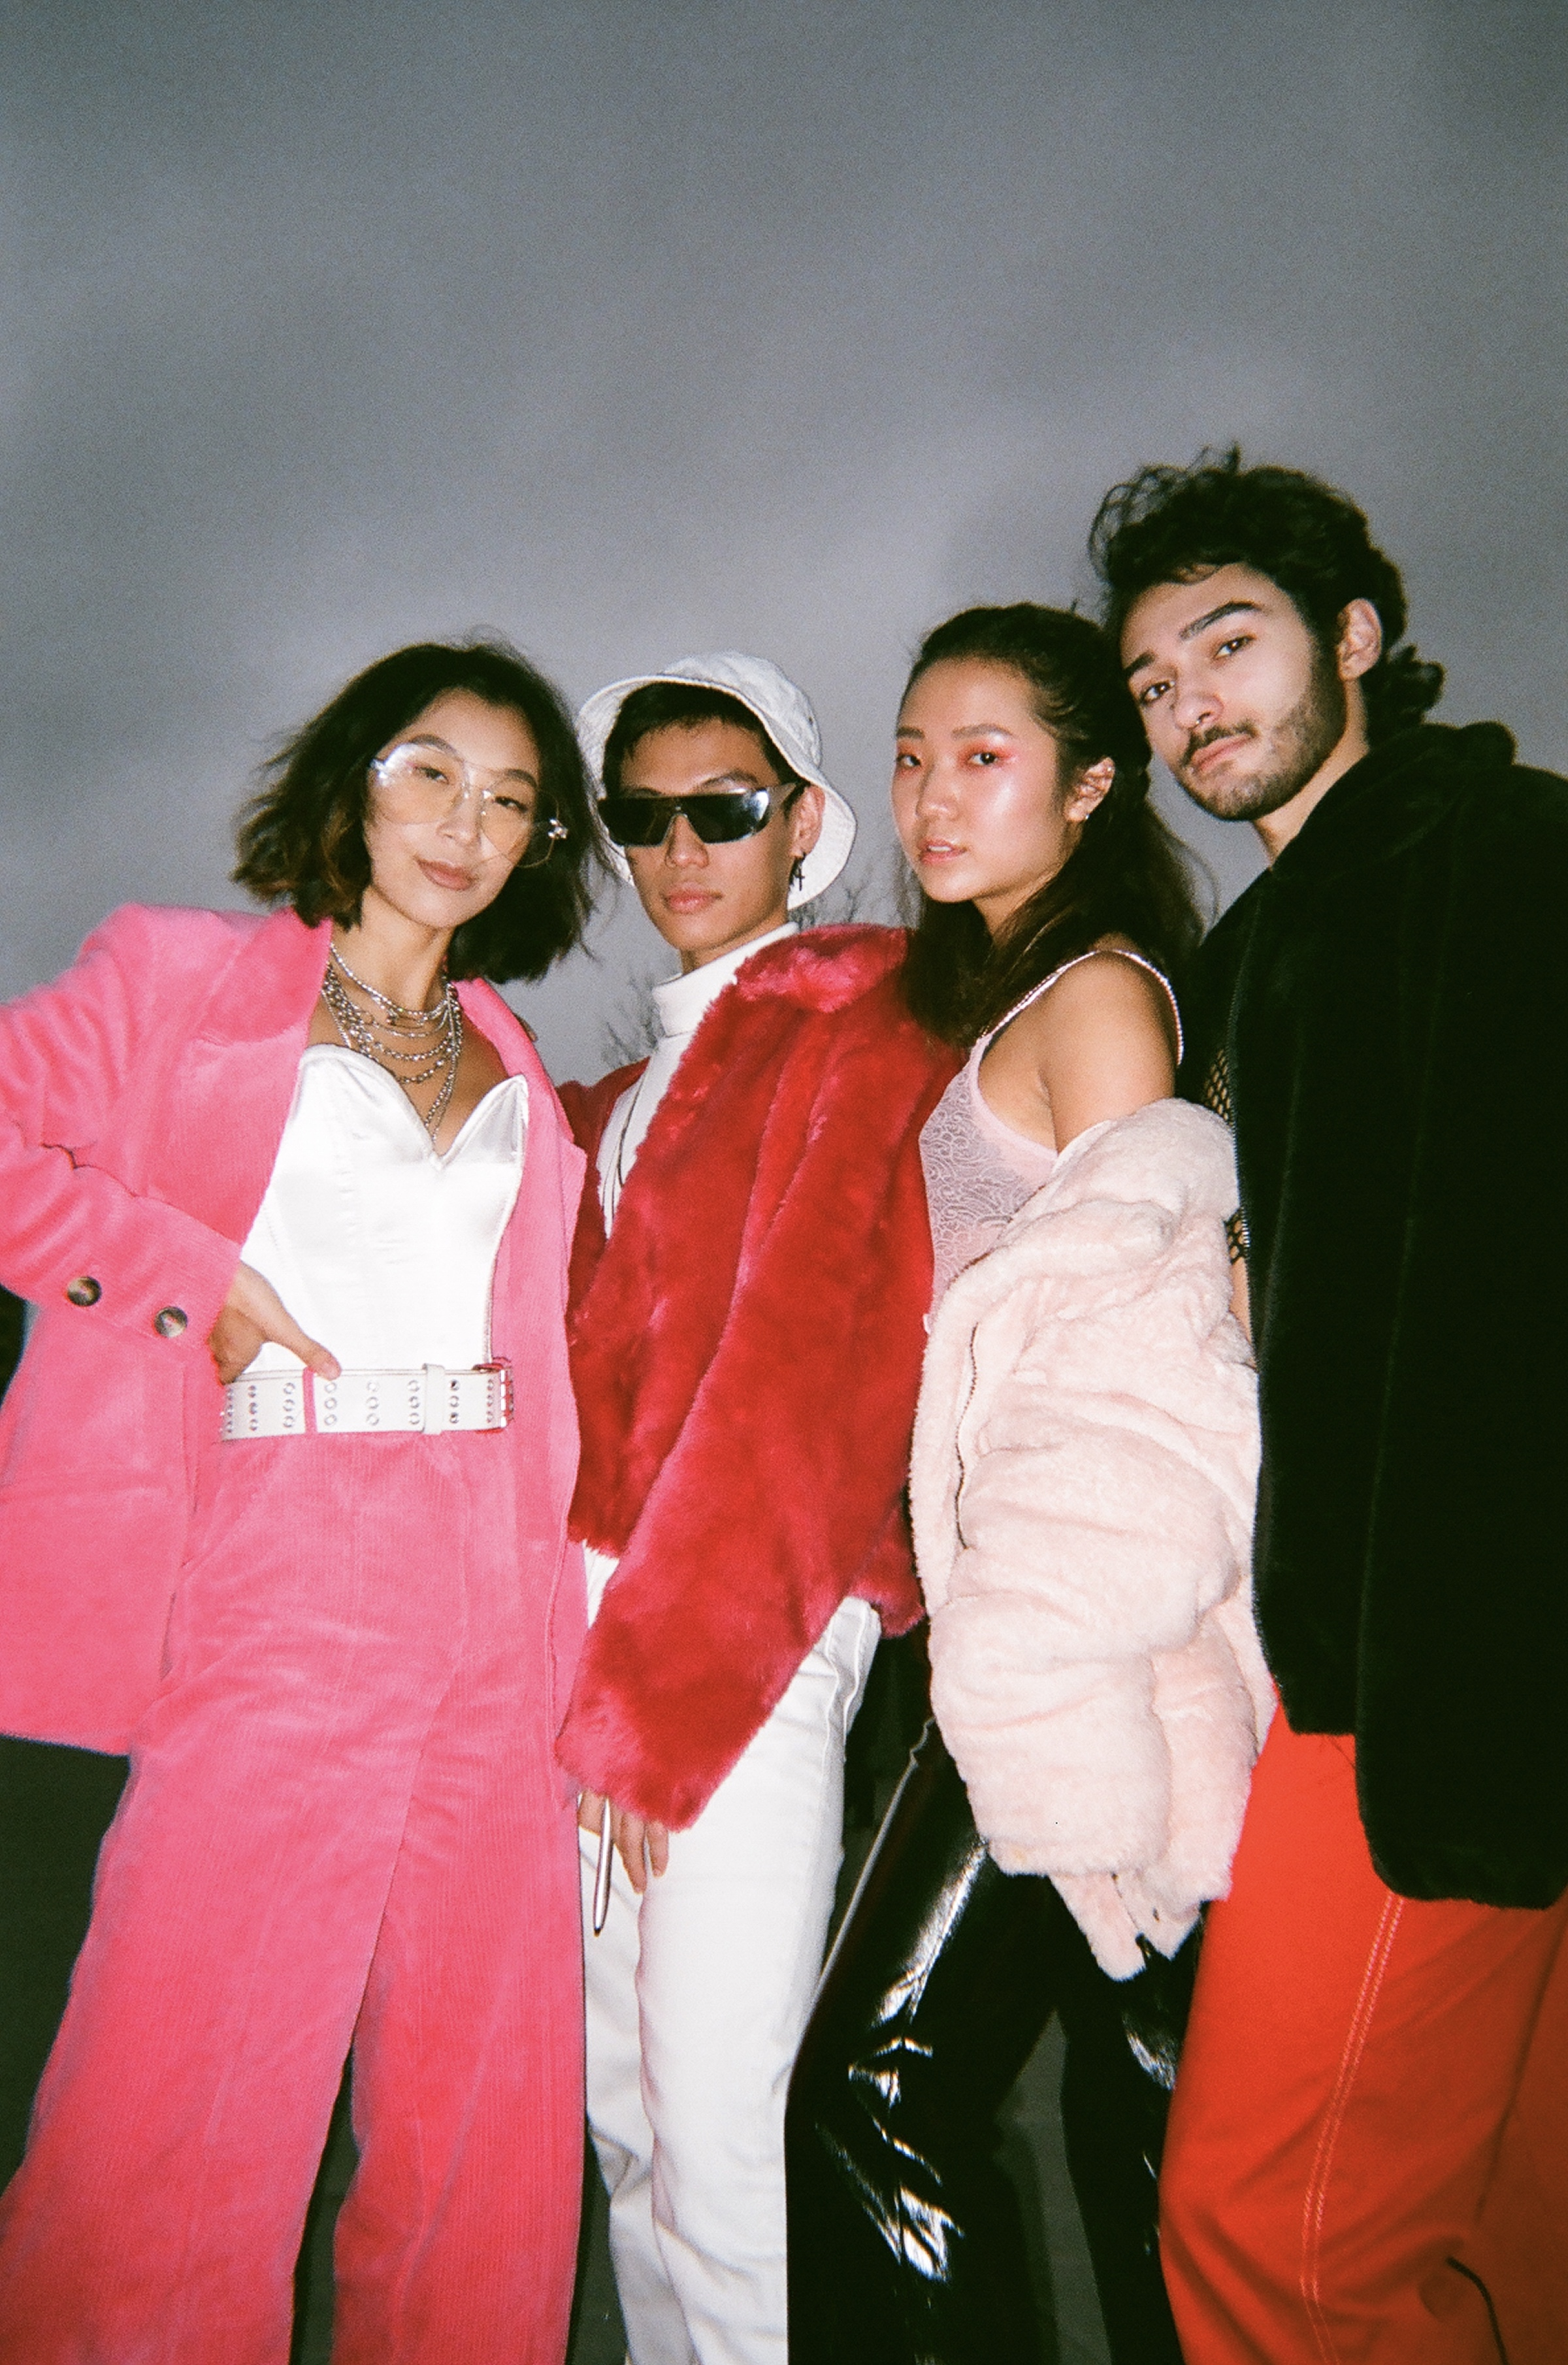 ELIZABETH WANG, MARC MANALOTO, ANNETTE YOO, ALEX AUCHUS AT ISSUE II RELEASE PARTY